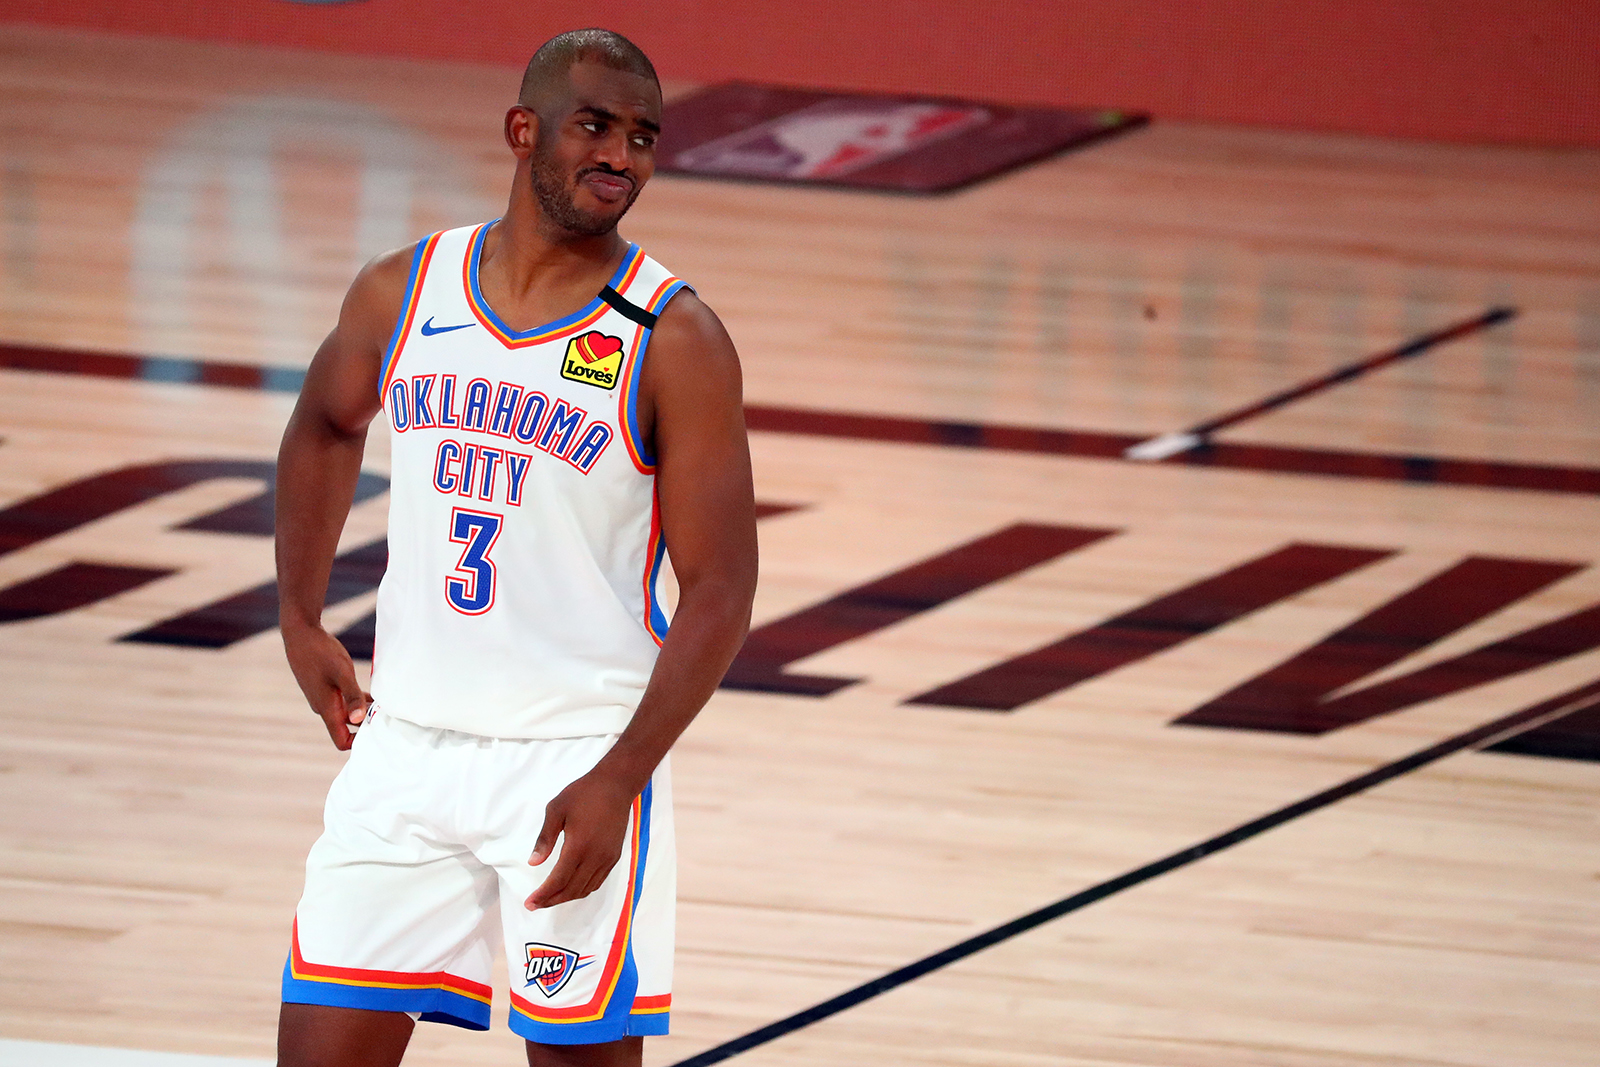 Chris Paul of the Oklahoma City Thunder during a game against the Houston Rockets during the 2020 NBA Playoffs on August 24, in Lake Buena Vista, Florida.